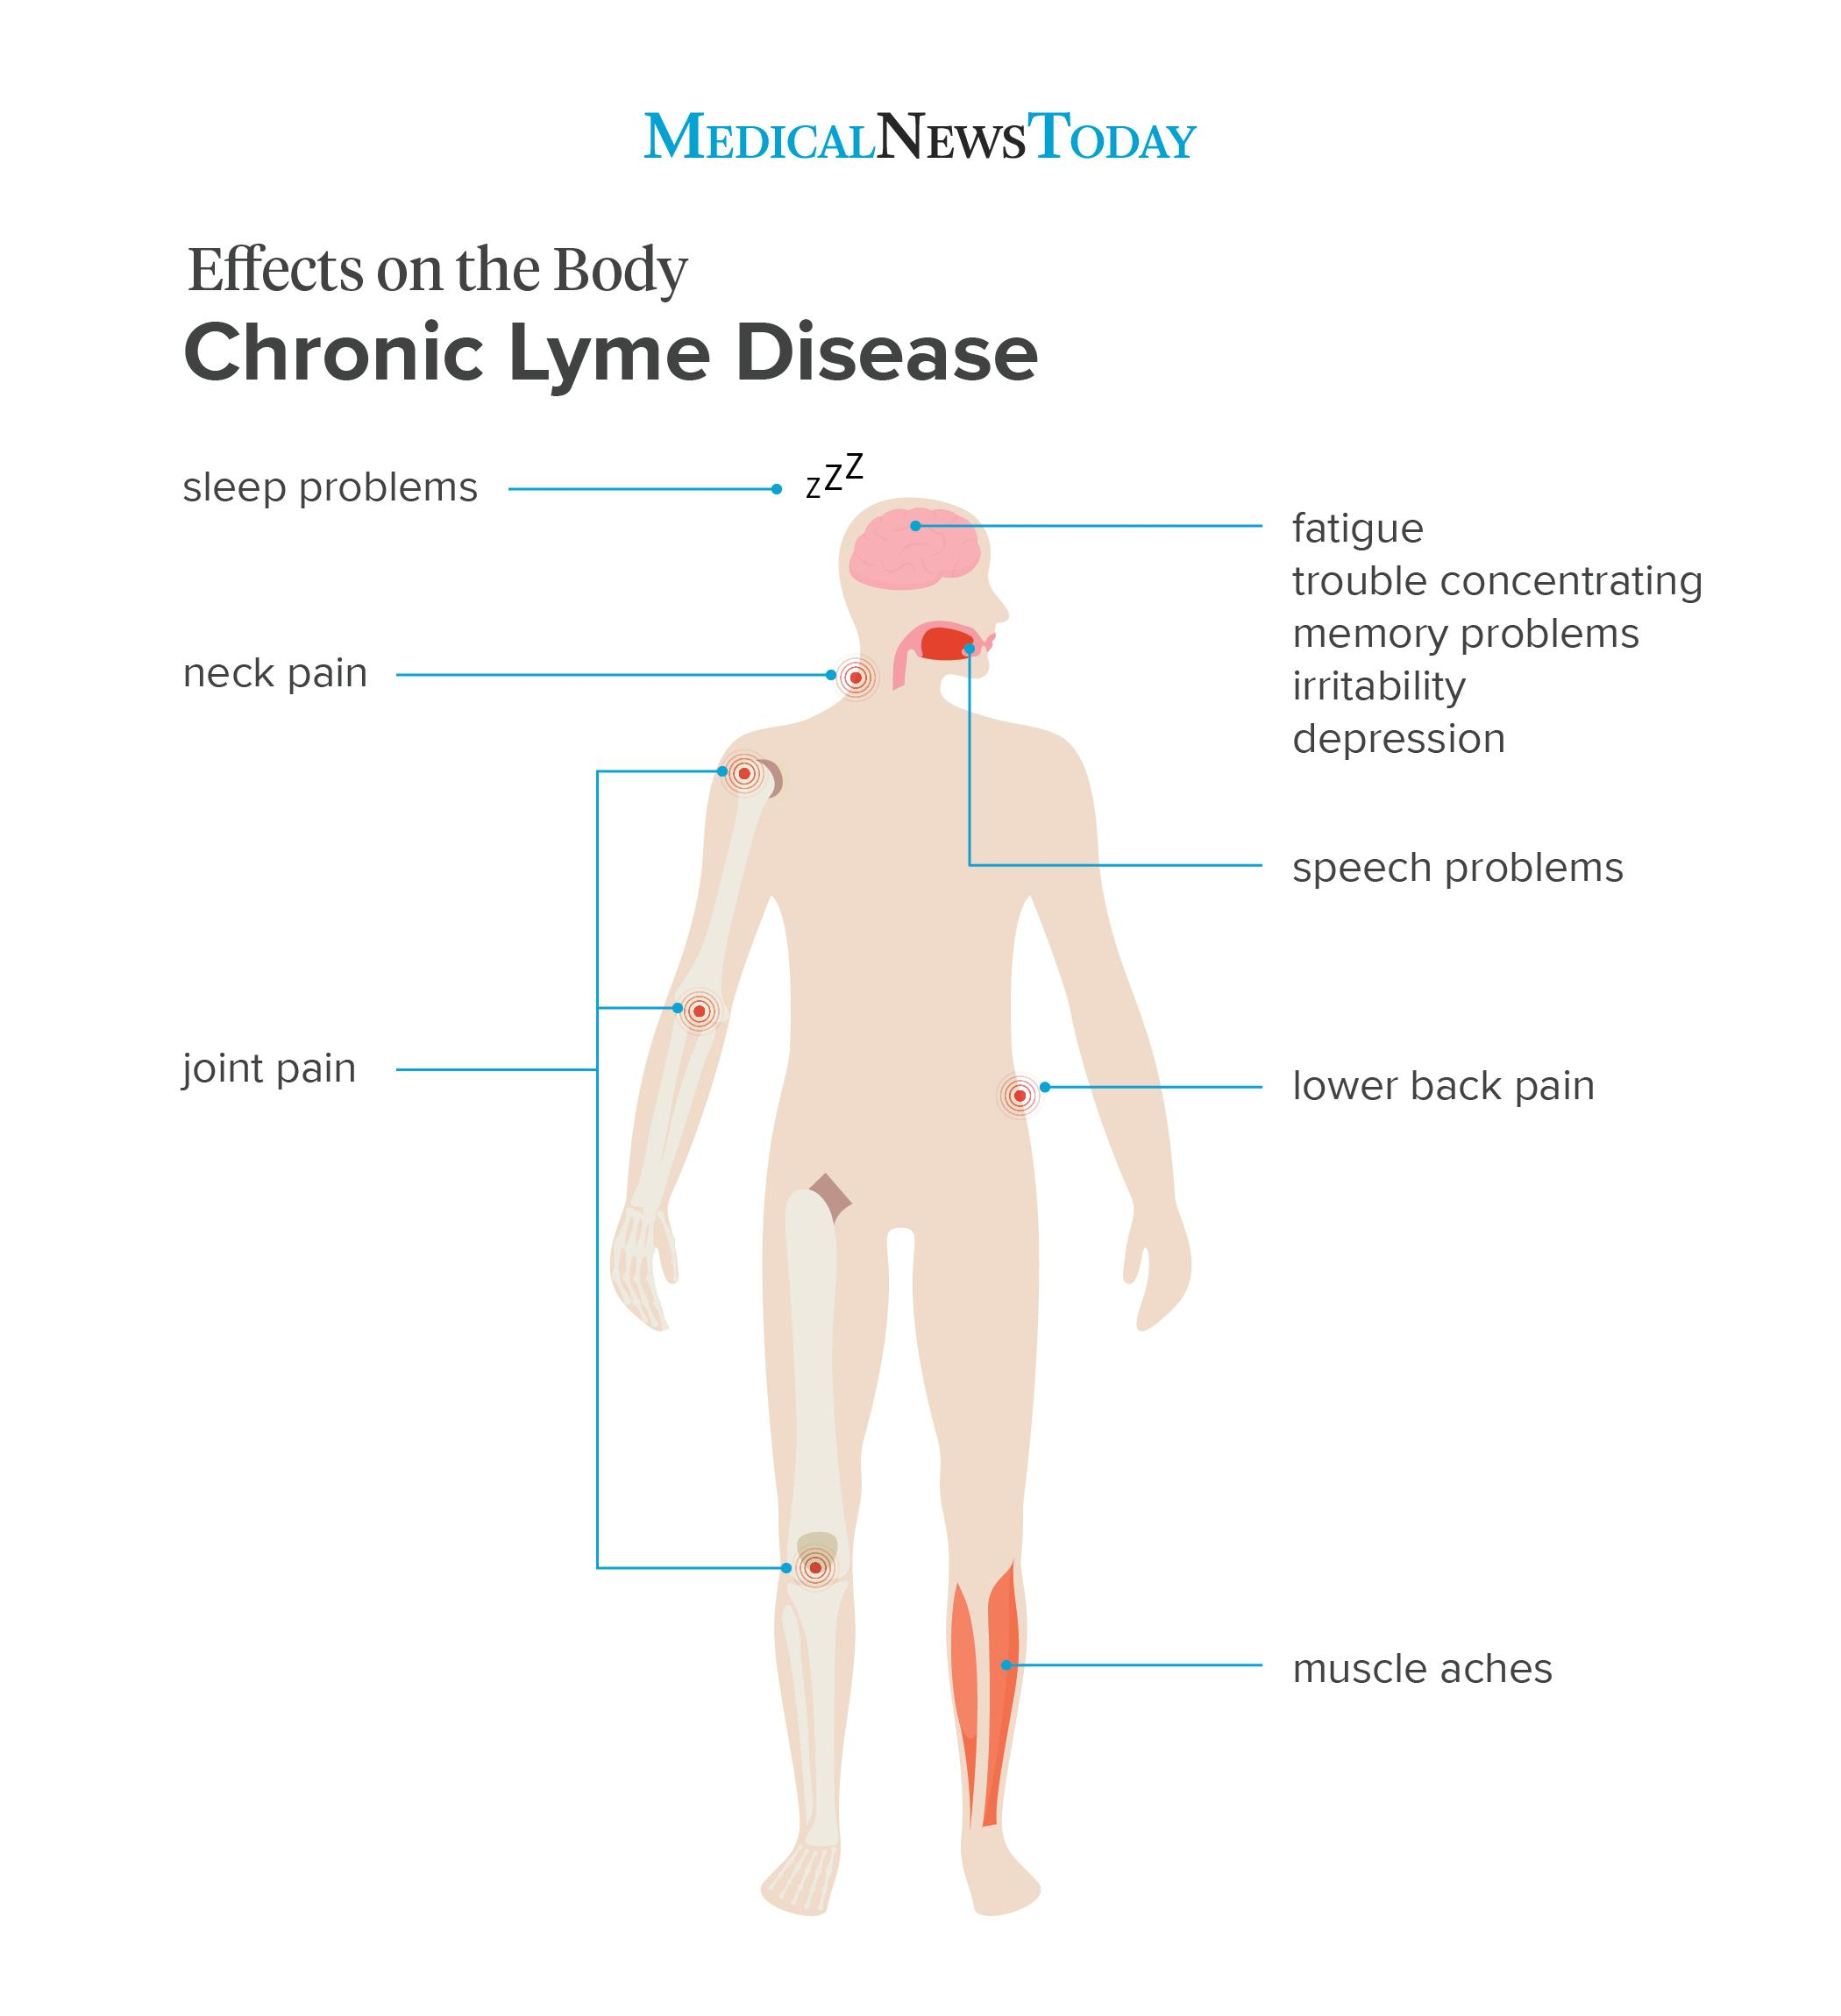 an infographic for chronic lyme disease